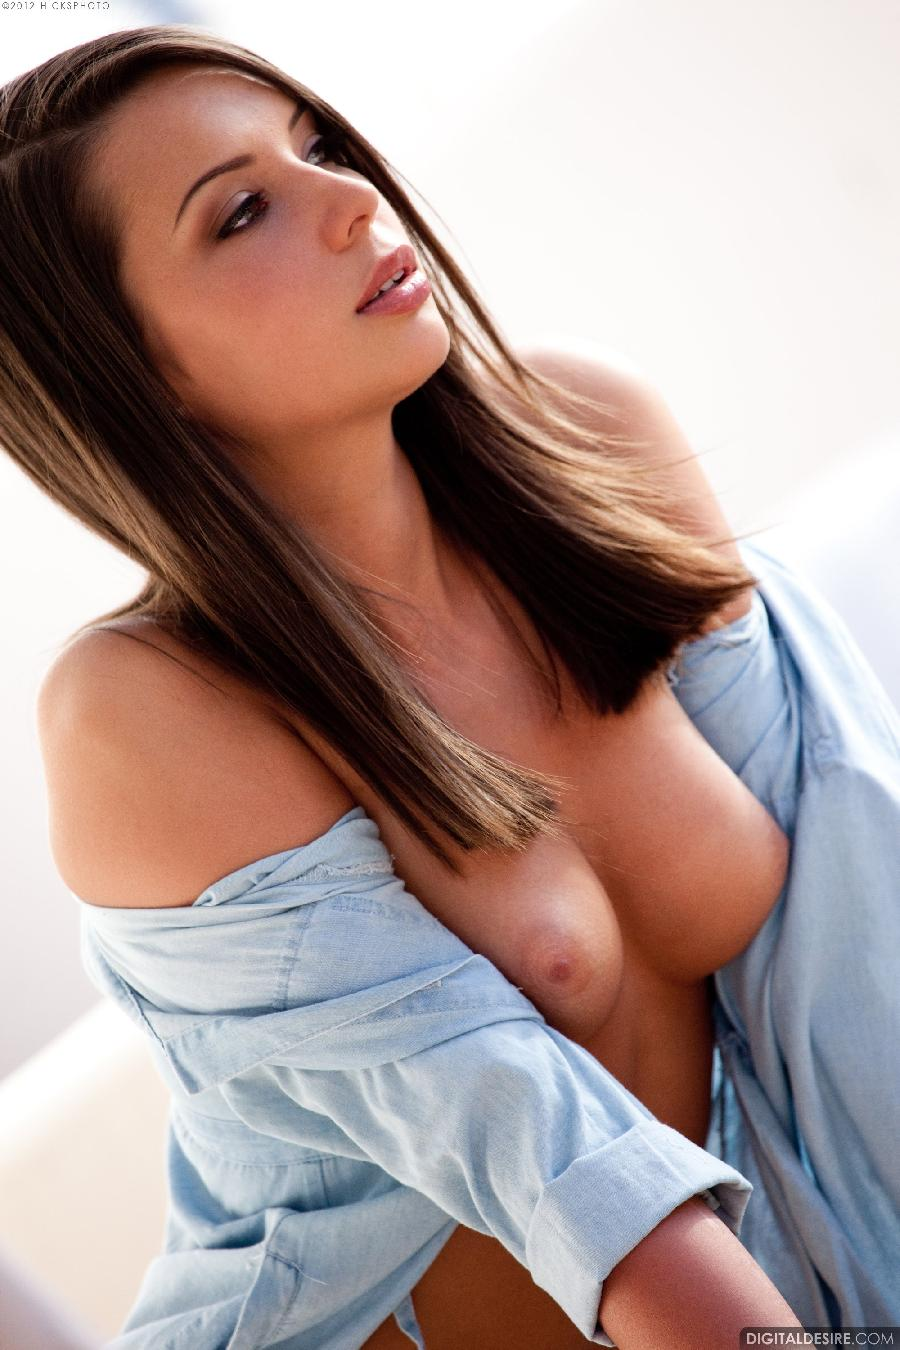 Sexy chick in big blue shirt - Sally Charles. Part 1 - 5